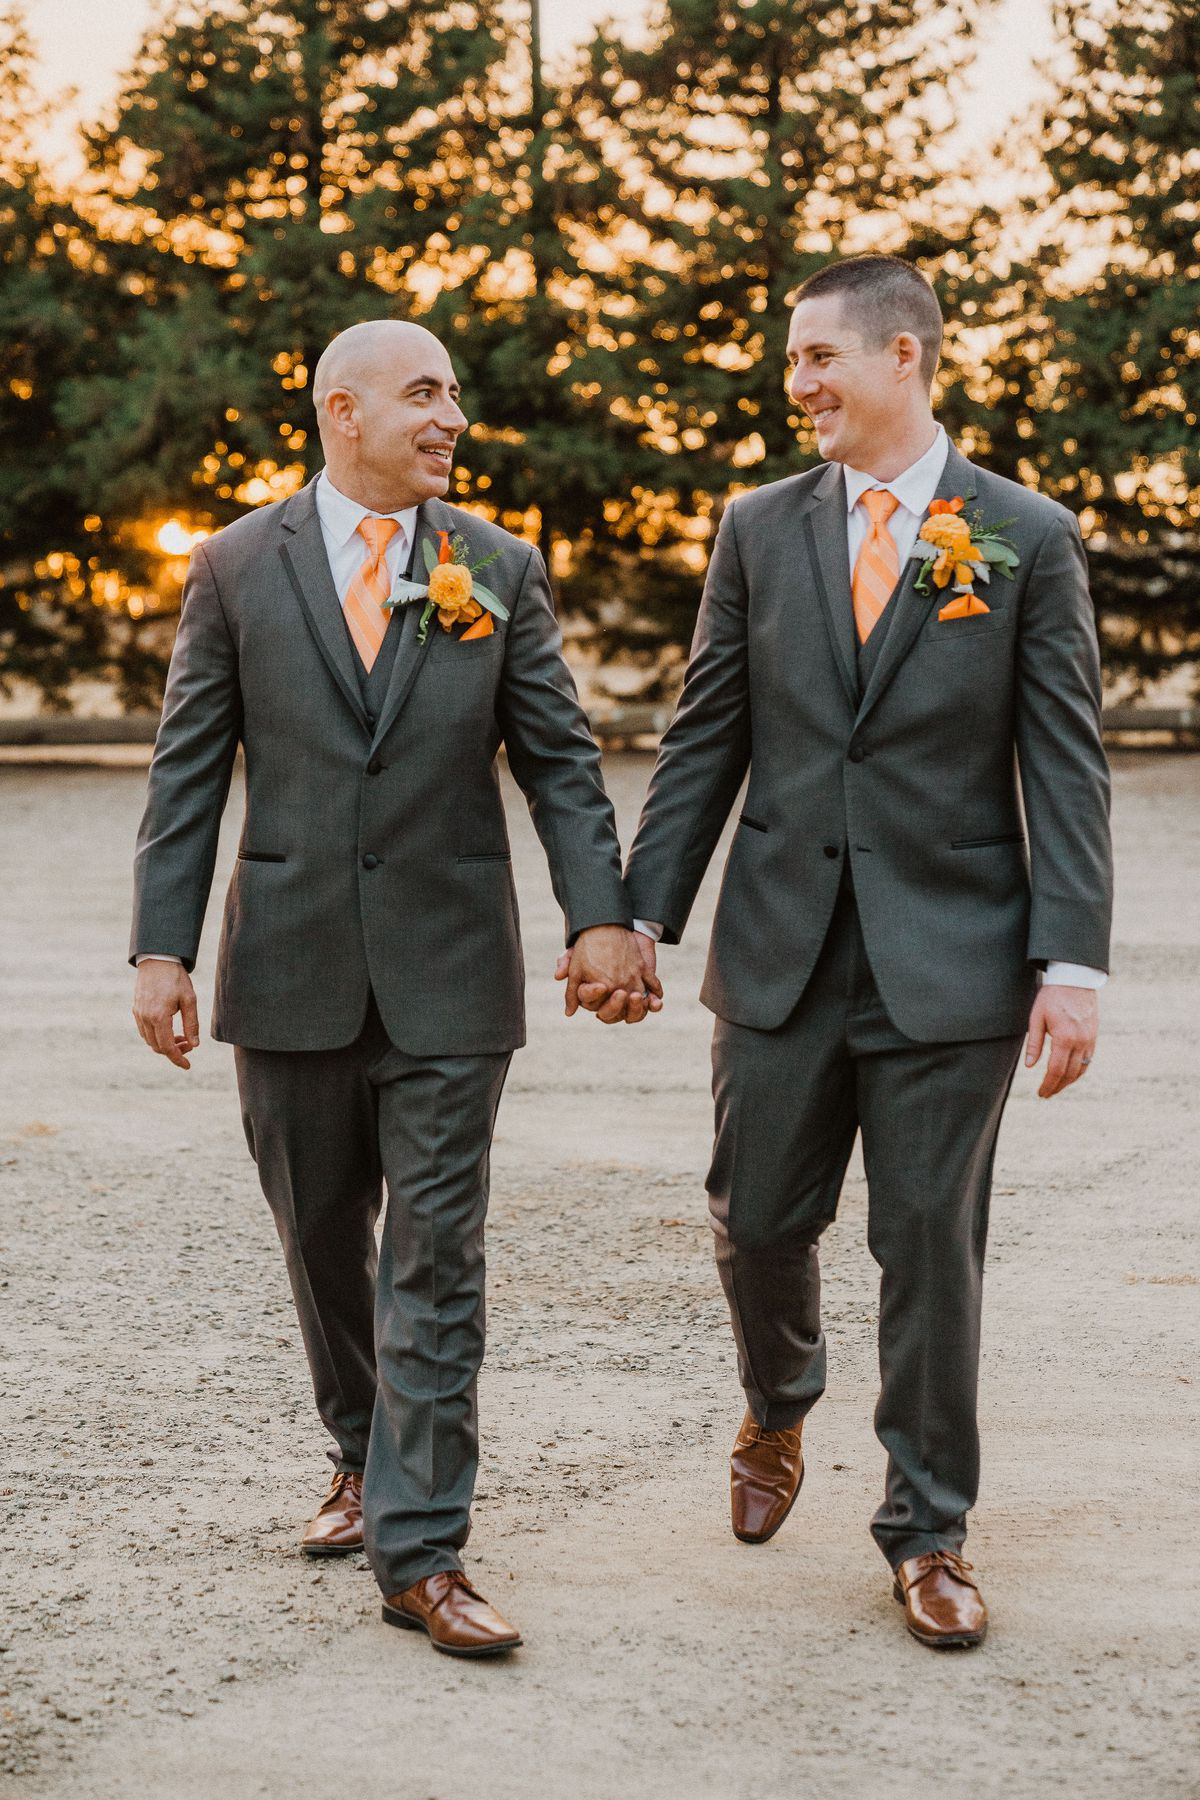 Bryan Pinto, left, and Justin Romeri were married in October